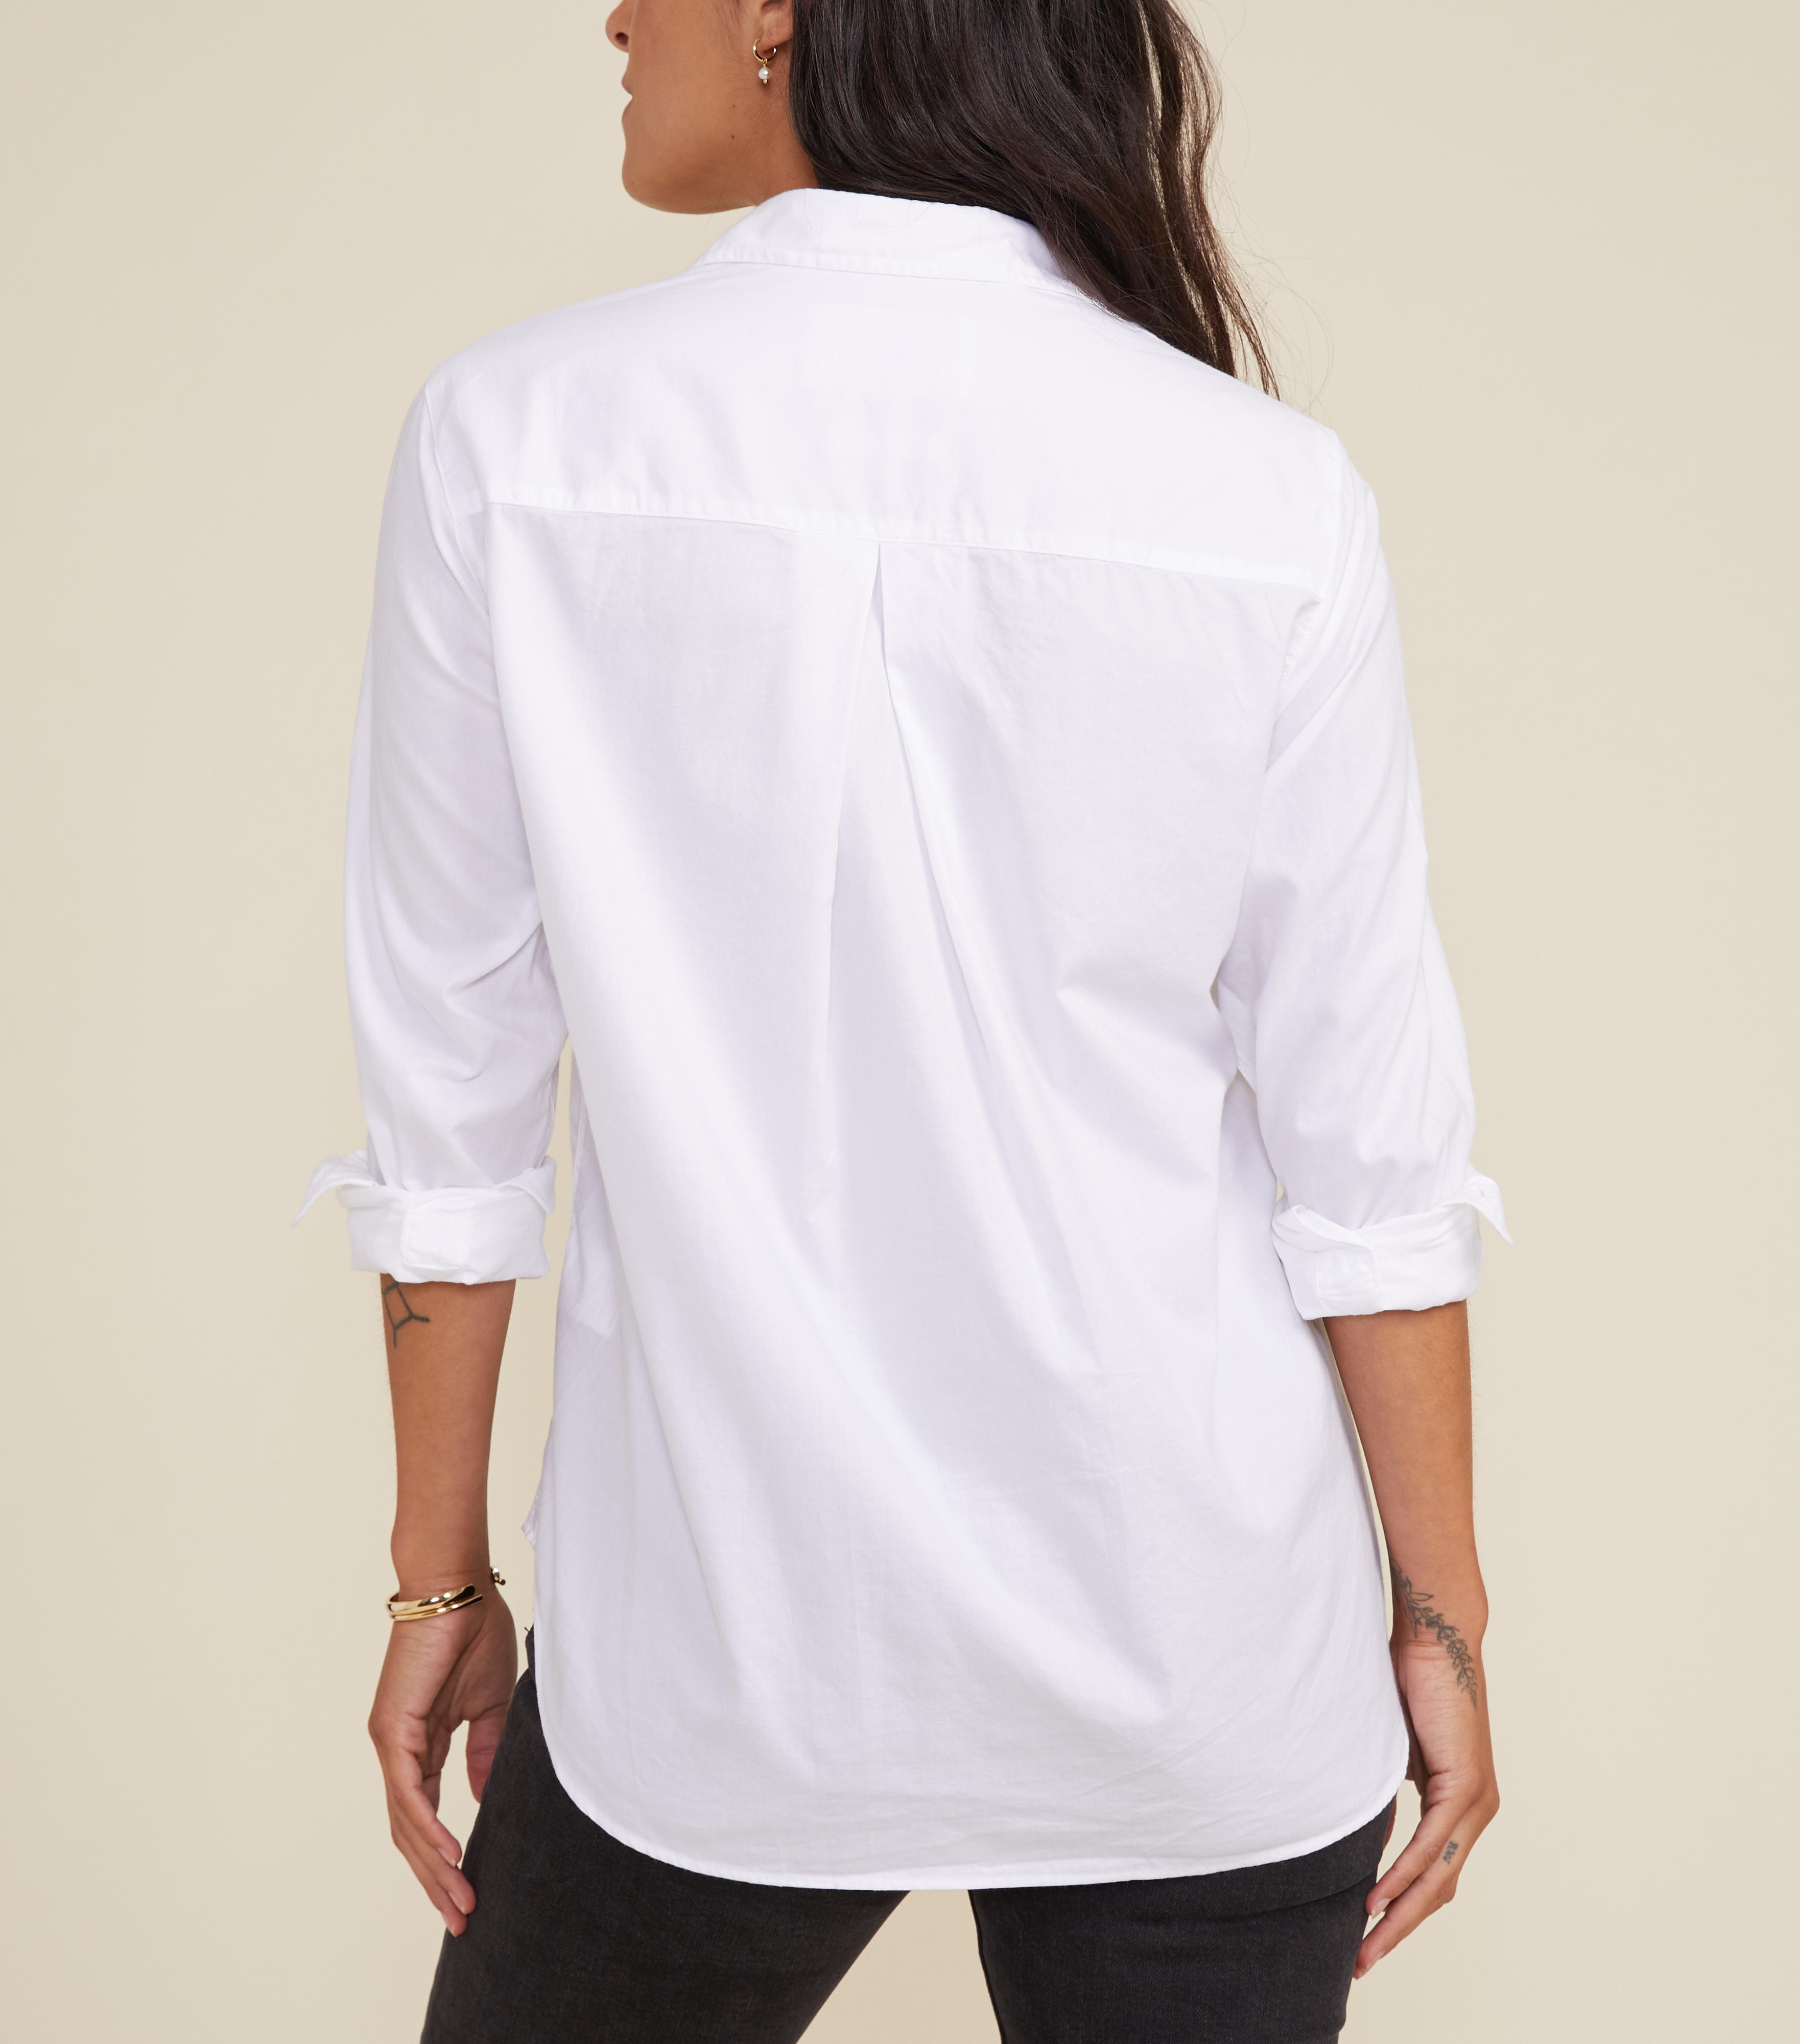 The Hero Button-Up Shirt Powerful, Brushed Cotton 1